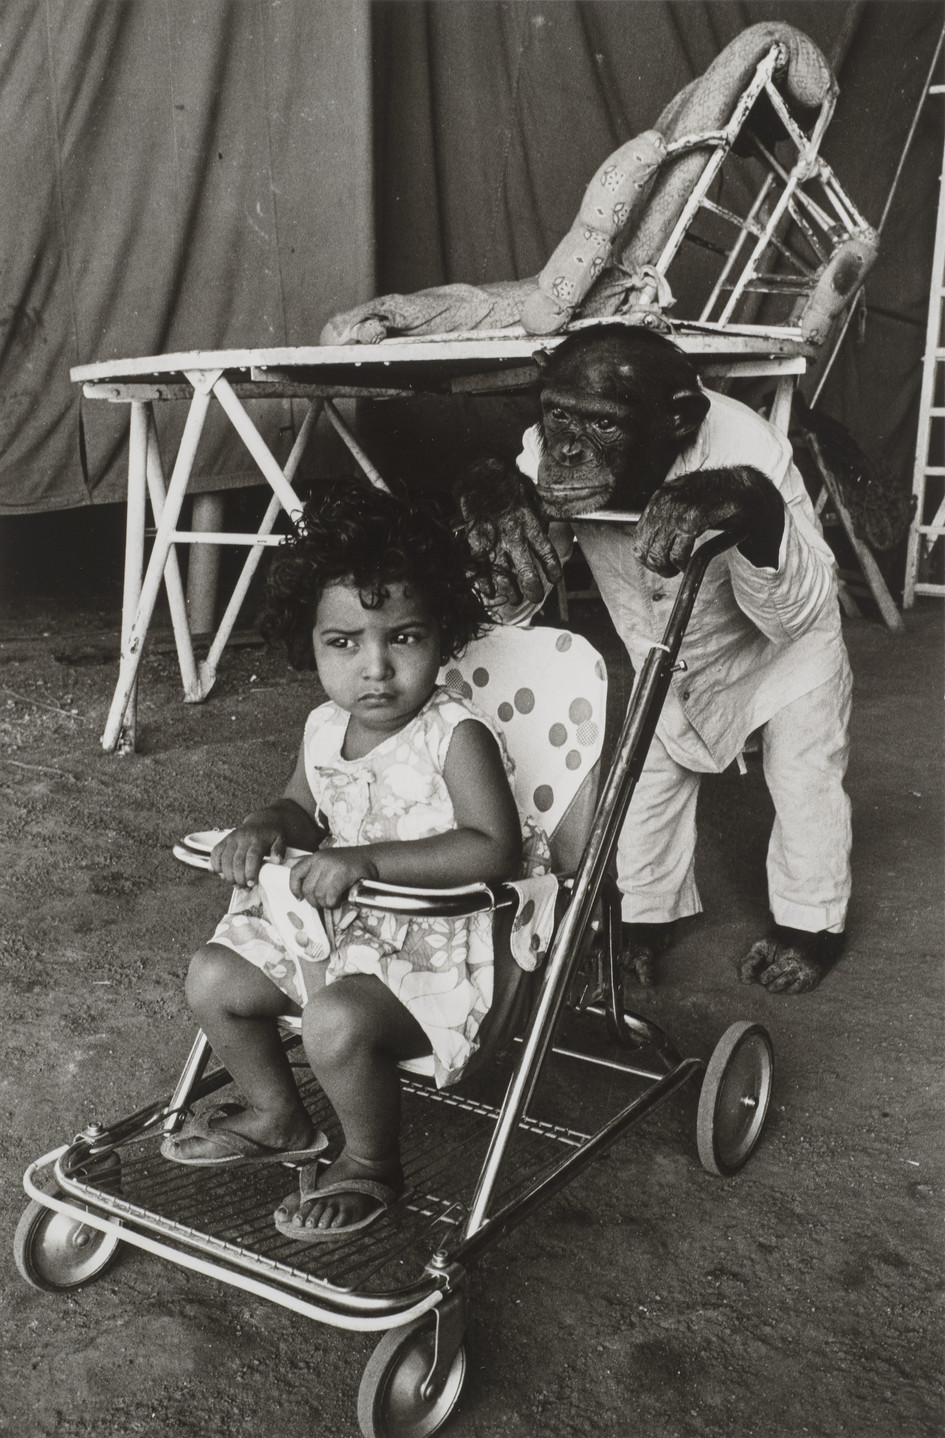 A black-and-white photograph of a medium-dark skinned toddler seated in a stroller being pushed by a clothed chimpanzee wearing white pants and a button-up shirt. The child has short, dark, curly hair and wears a light colored sundress, and appears apprehensive.